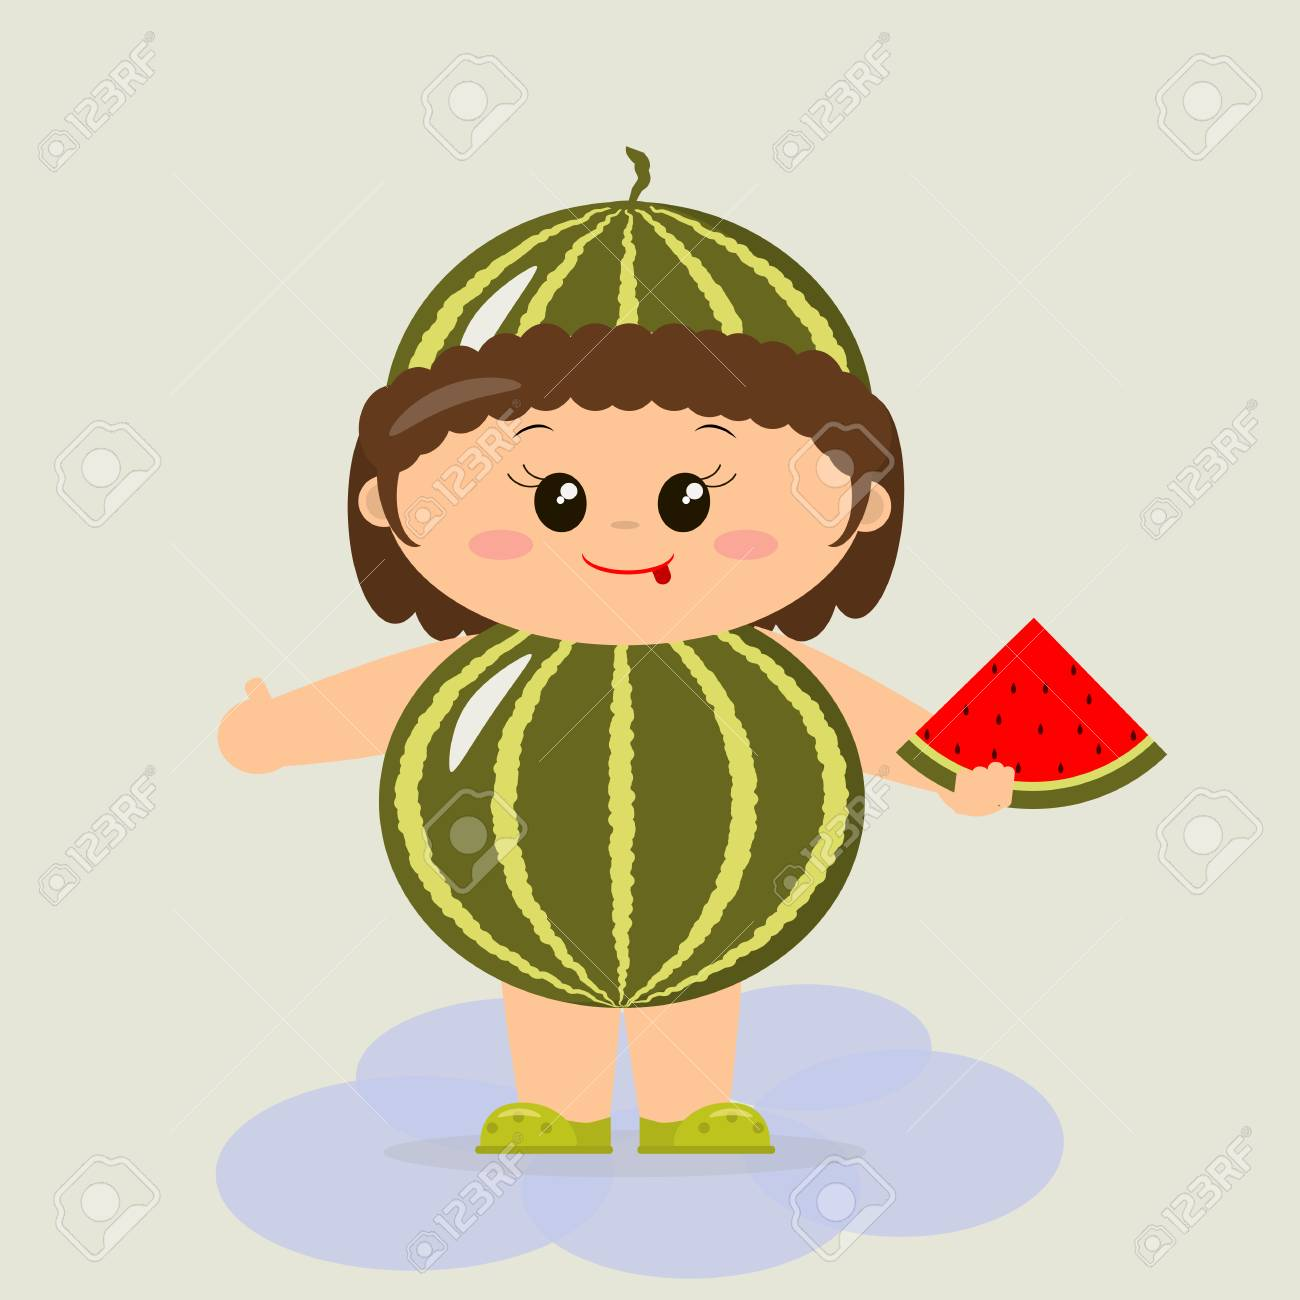 Baby in a watermelon costume in a cartoon style. Stock Vector - 81712814  sc 1 st  123RF.com & Baby In A Watermelon Costume In A Cartoon Style. Royalty Free ...